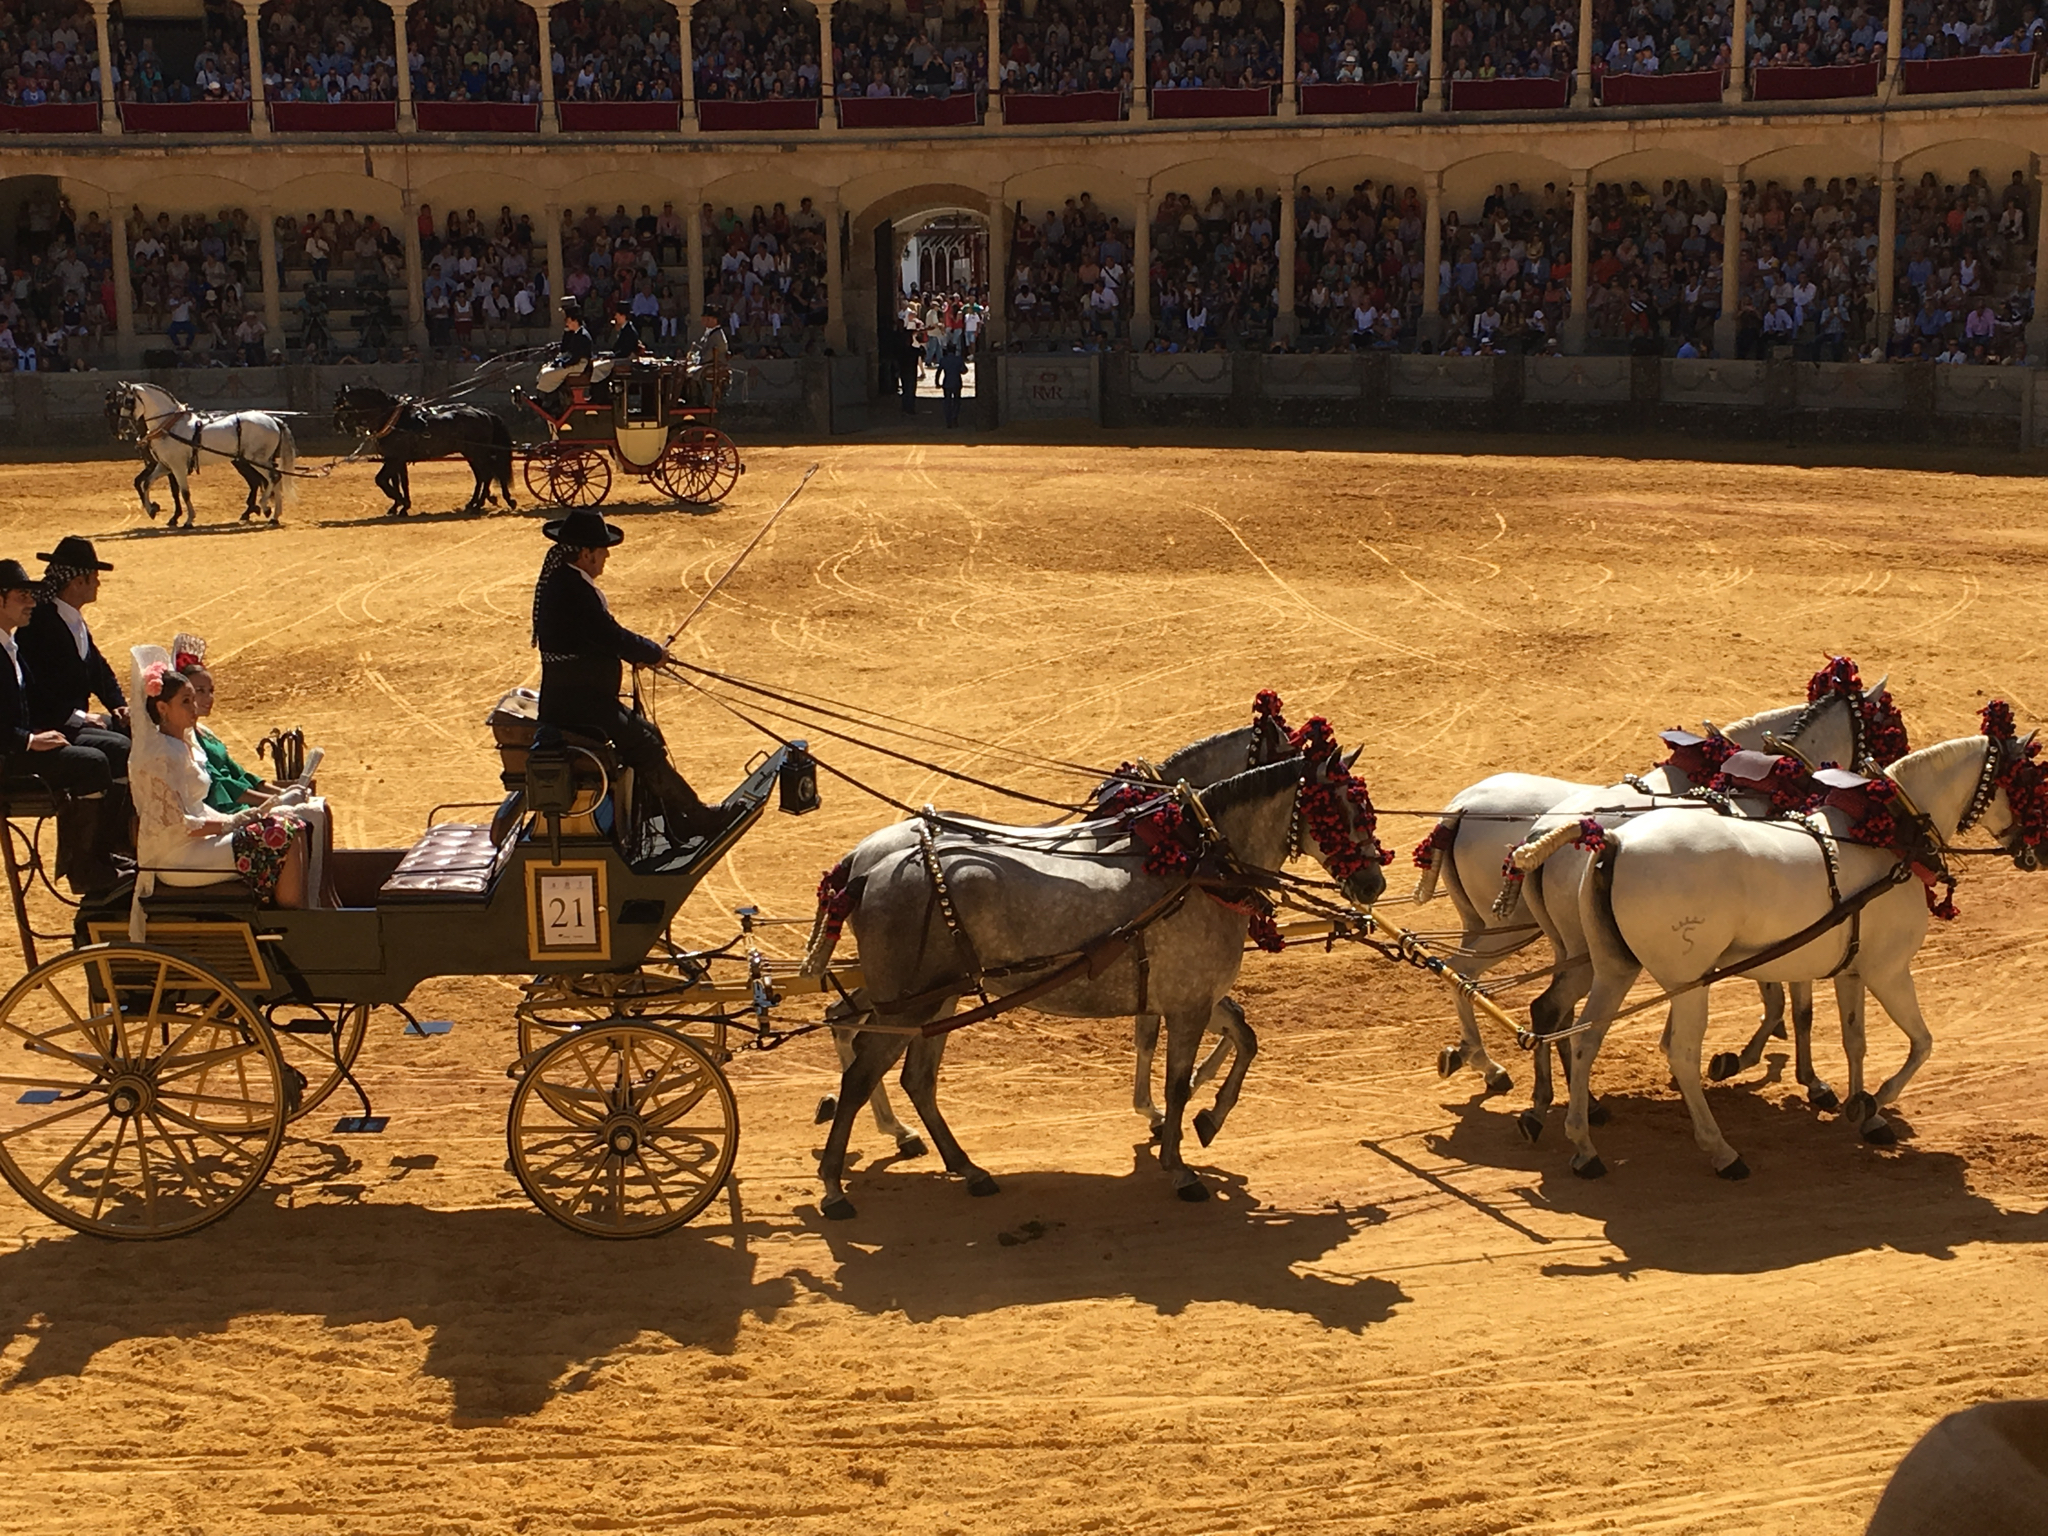 Wonderful displays at the September fiesta close to our luxury villa rental in Ronda, Andalucia, Spain